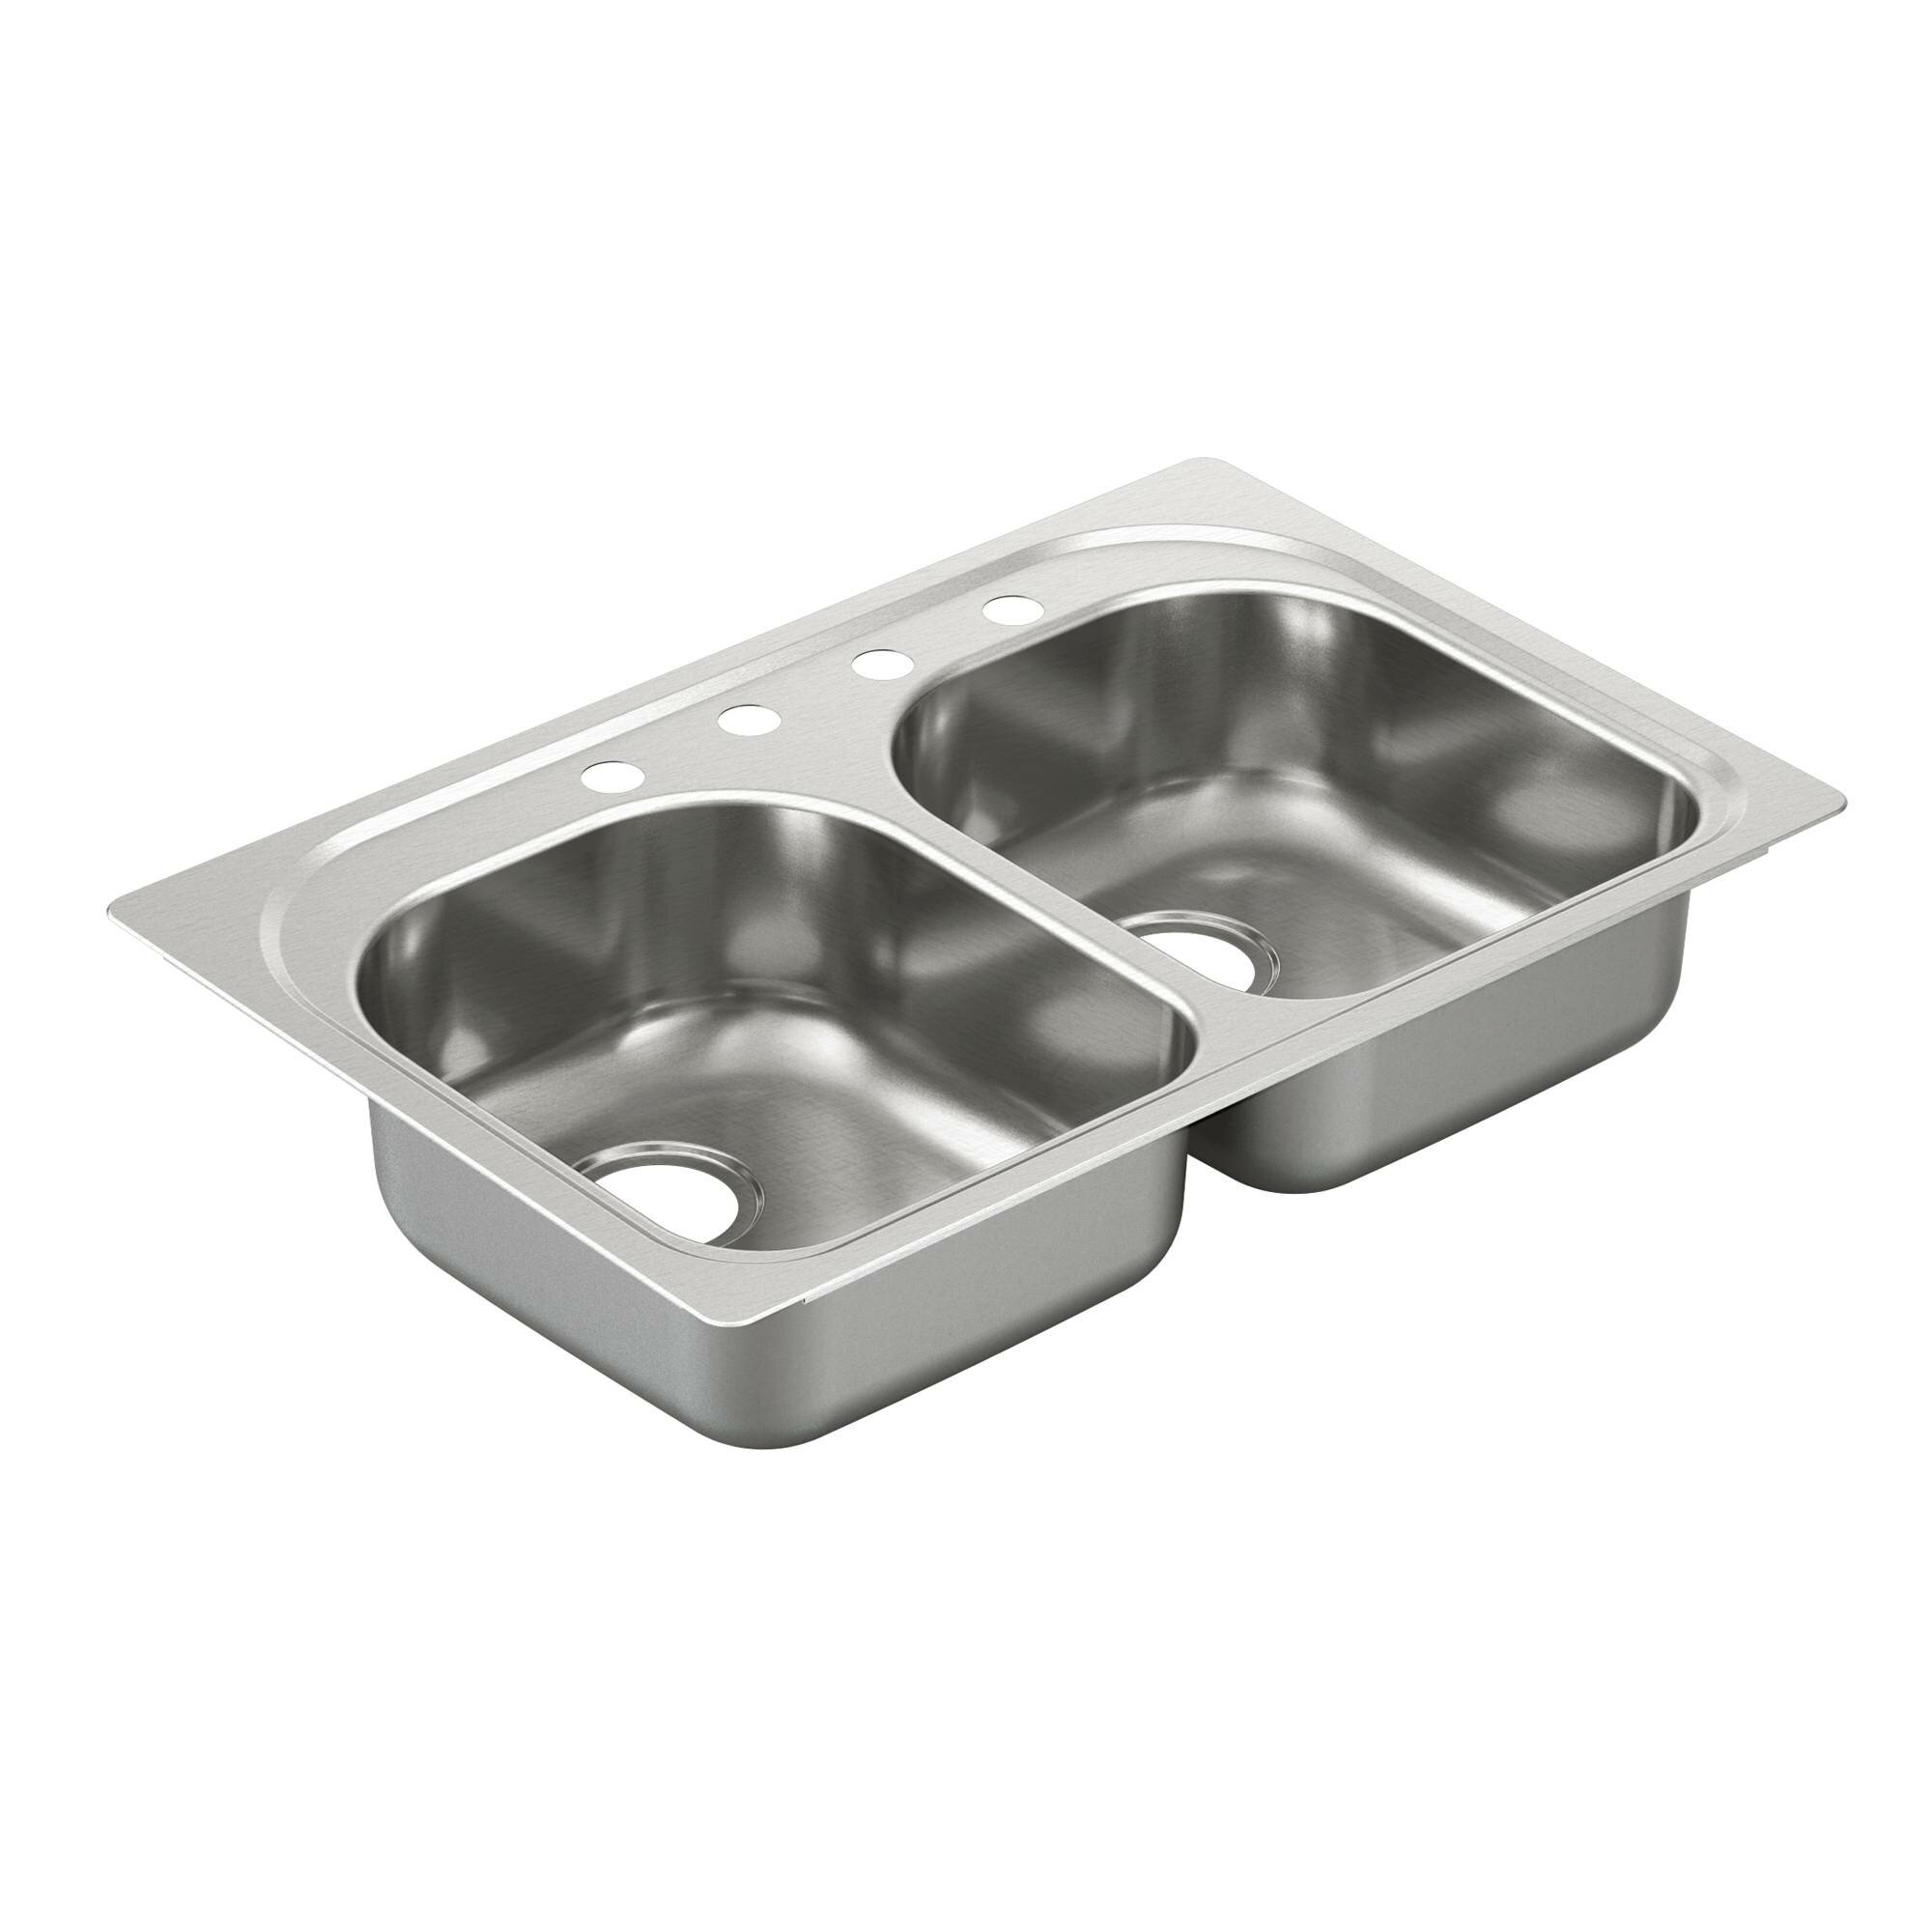 Drop In Kitchen Sinks Double Bowl : 2000 Series Double Bowl Drop-In Kitchen Sink Wayfair